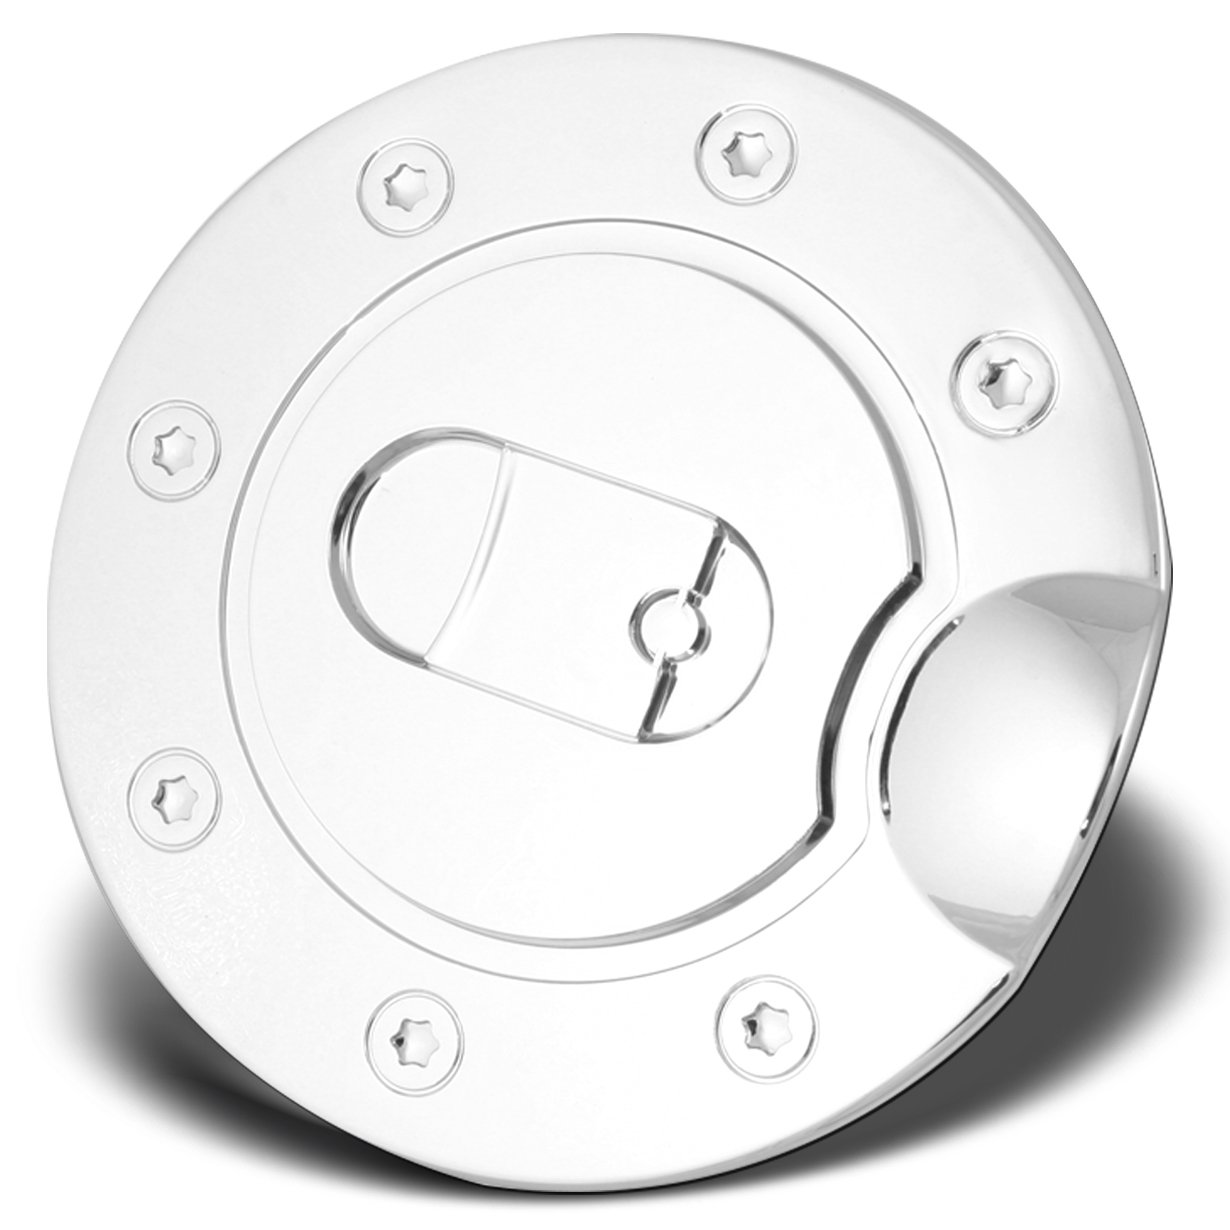 Get Quotations Automodzone Chrome Abs Fuel Tank Gas Door Cap Cover For 88 01 Chevy C